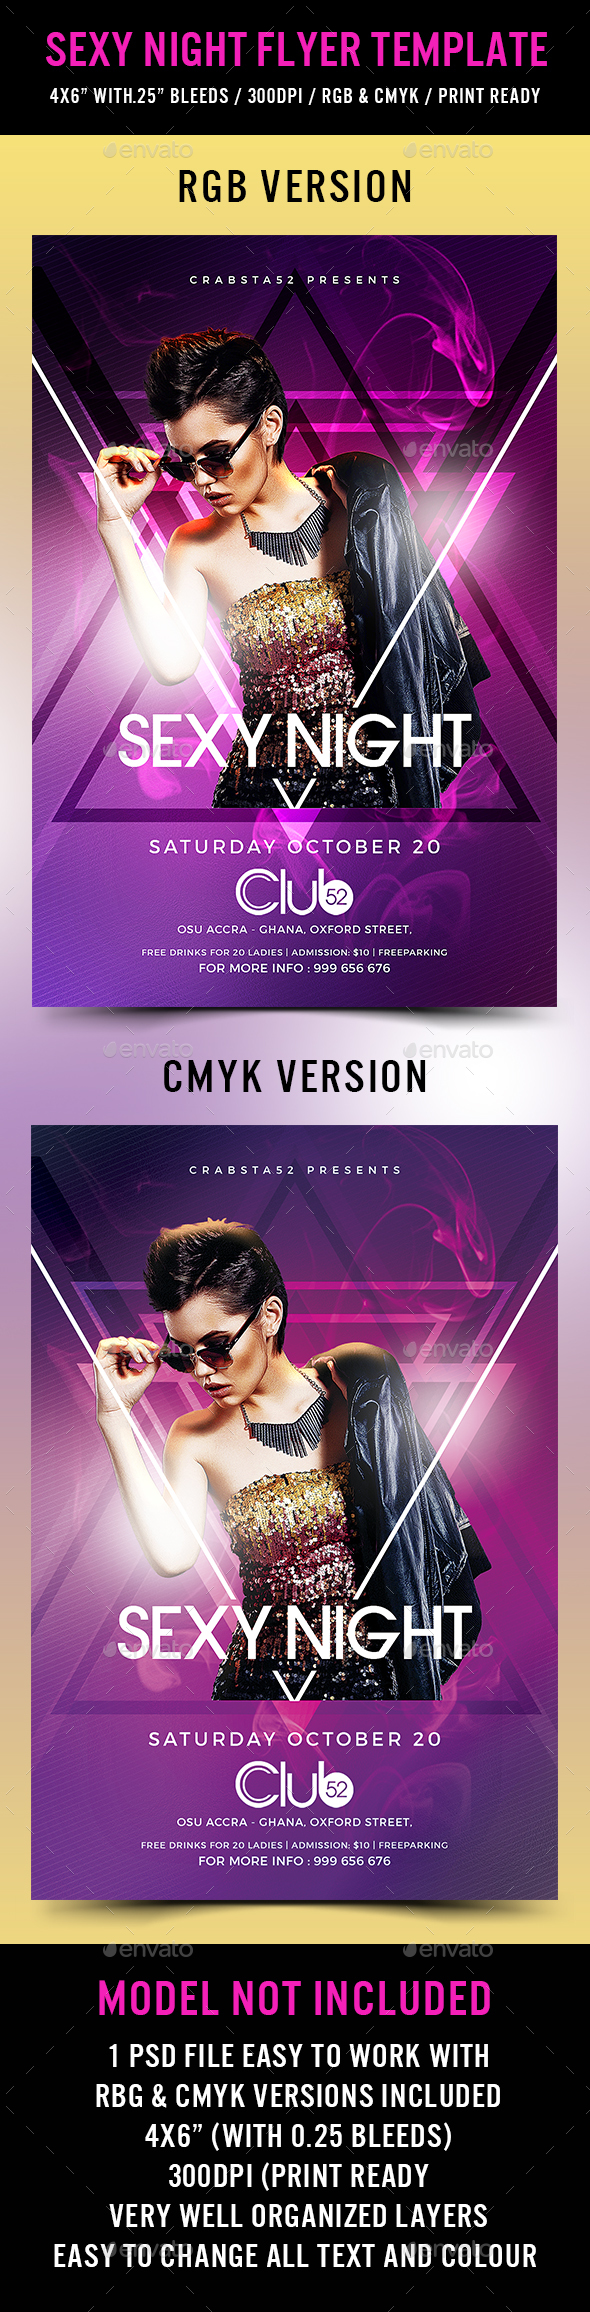 Sexy Night Flyer Template - Flyers Print Templates